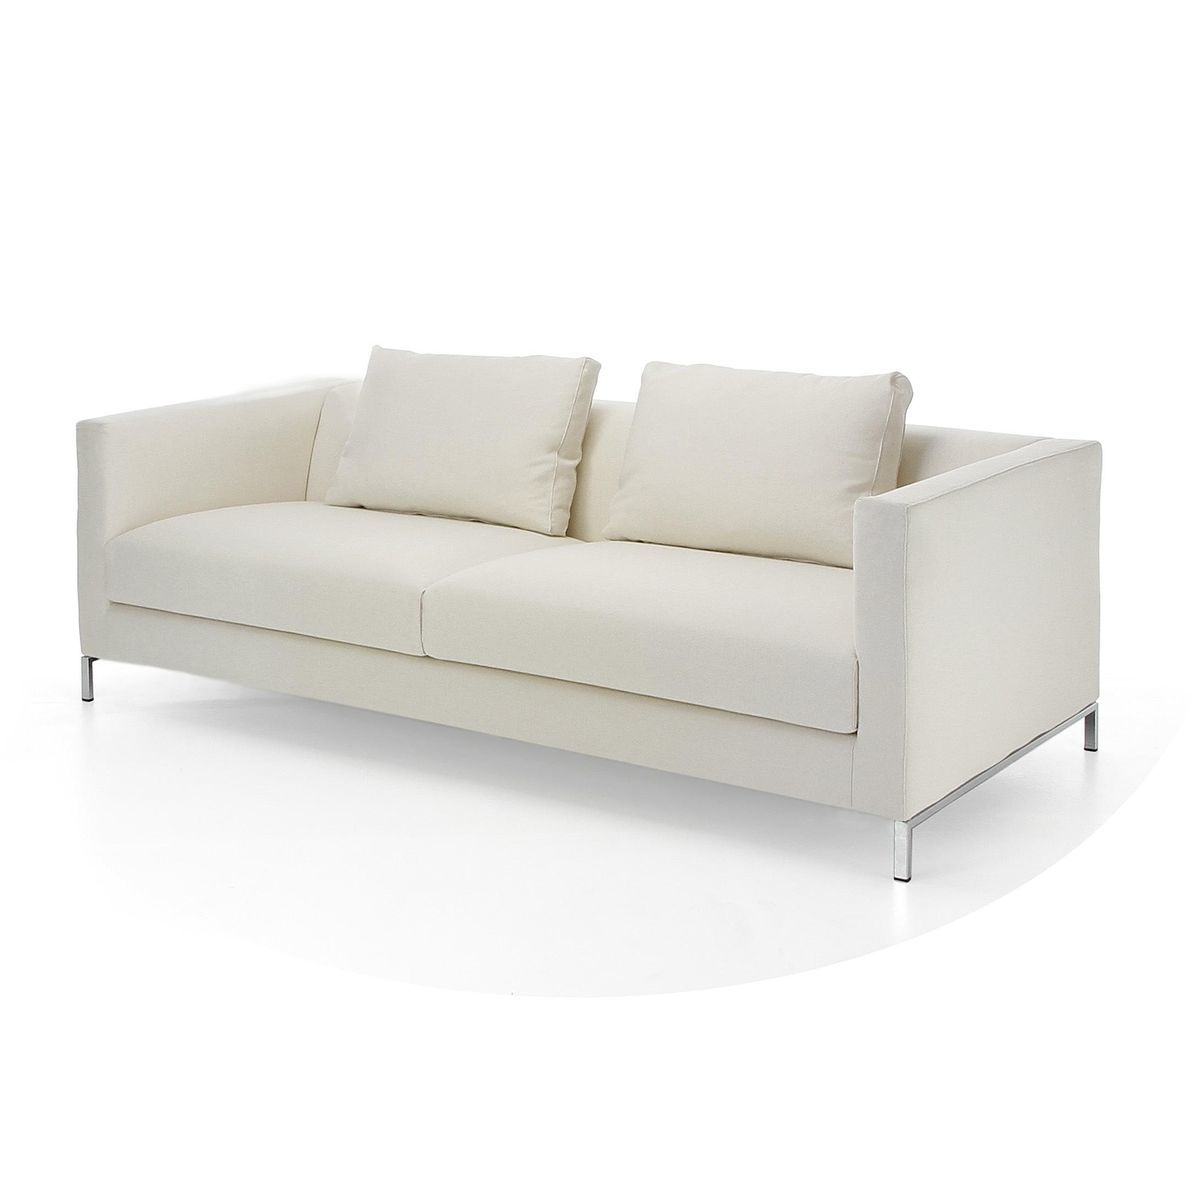 Cube sofa 3 sitzer couch adwood for Couch hersteller